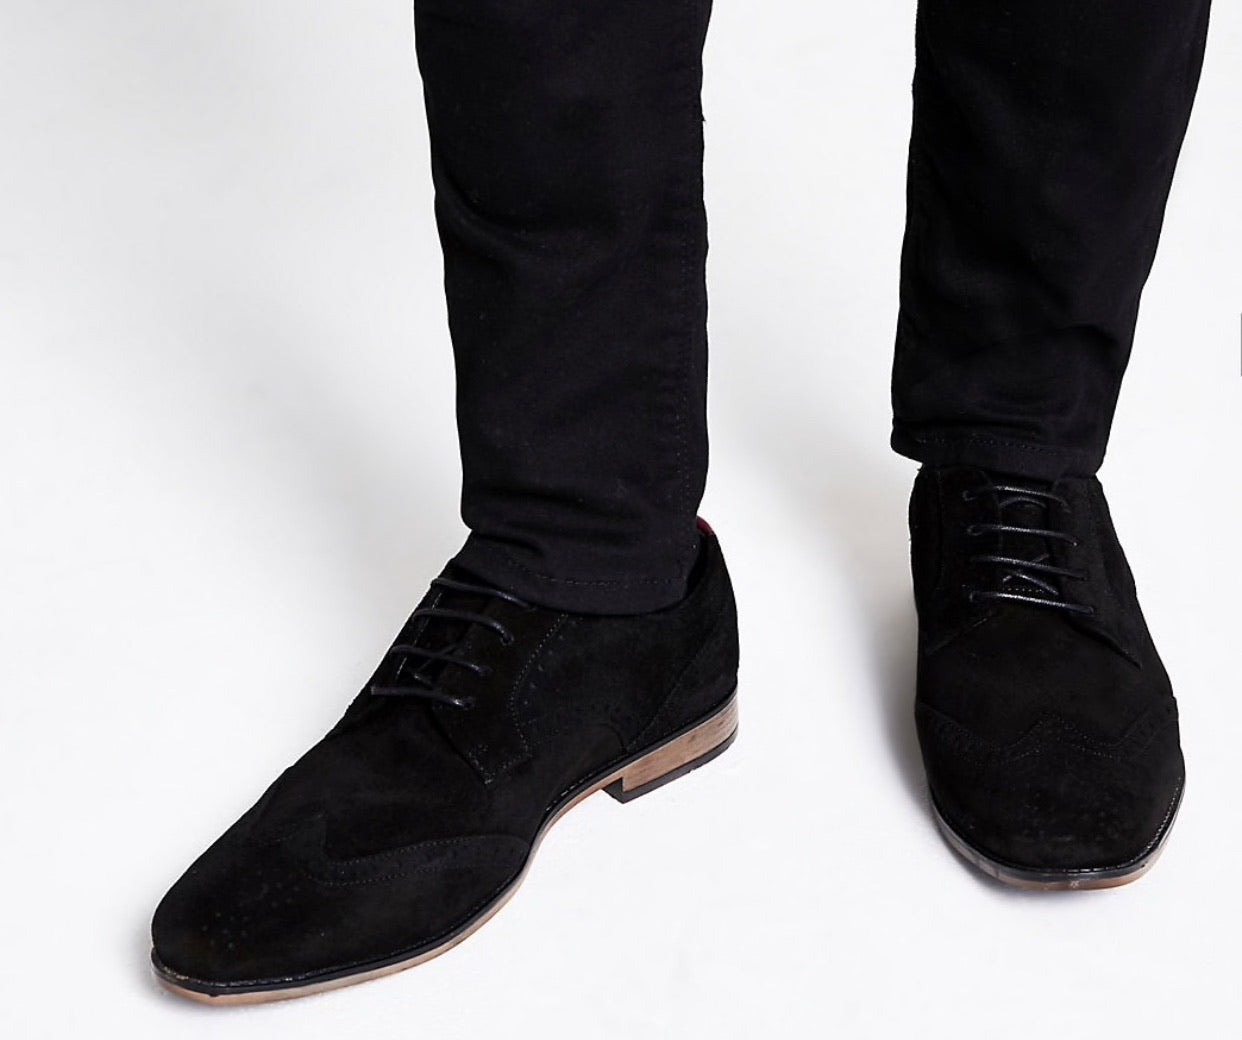 RIVER ISLAND BLACK SUEDE LACE-UP BROGUES